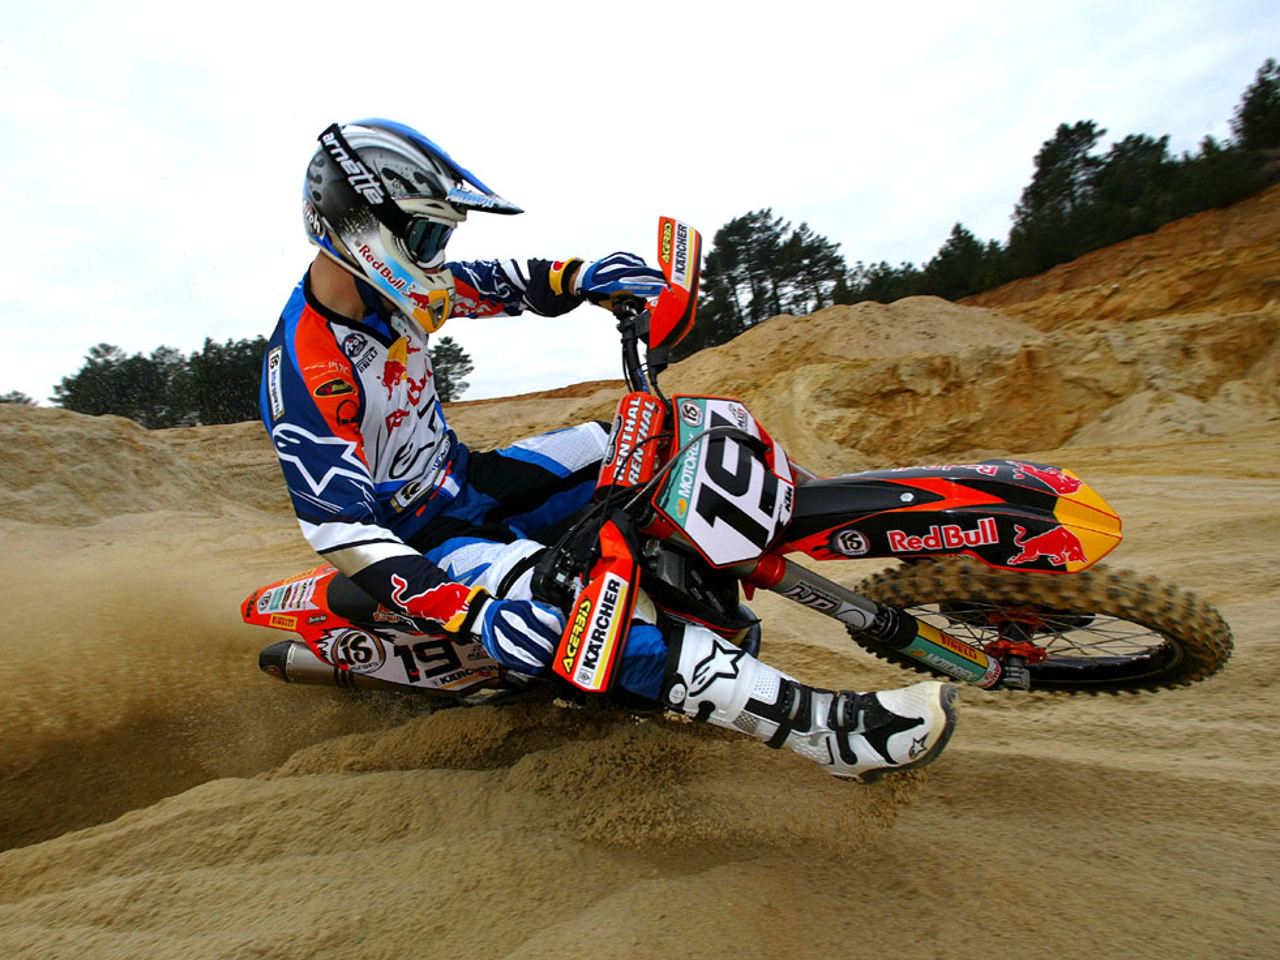 Pin Wallpapers Bikes Racing Background Cool Wallpaper Motorbikes on 1280x960